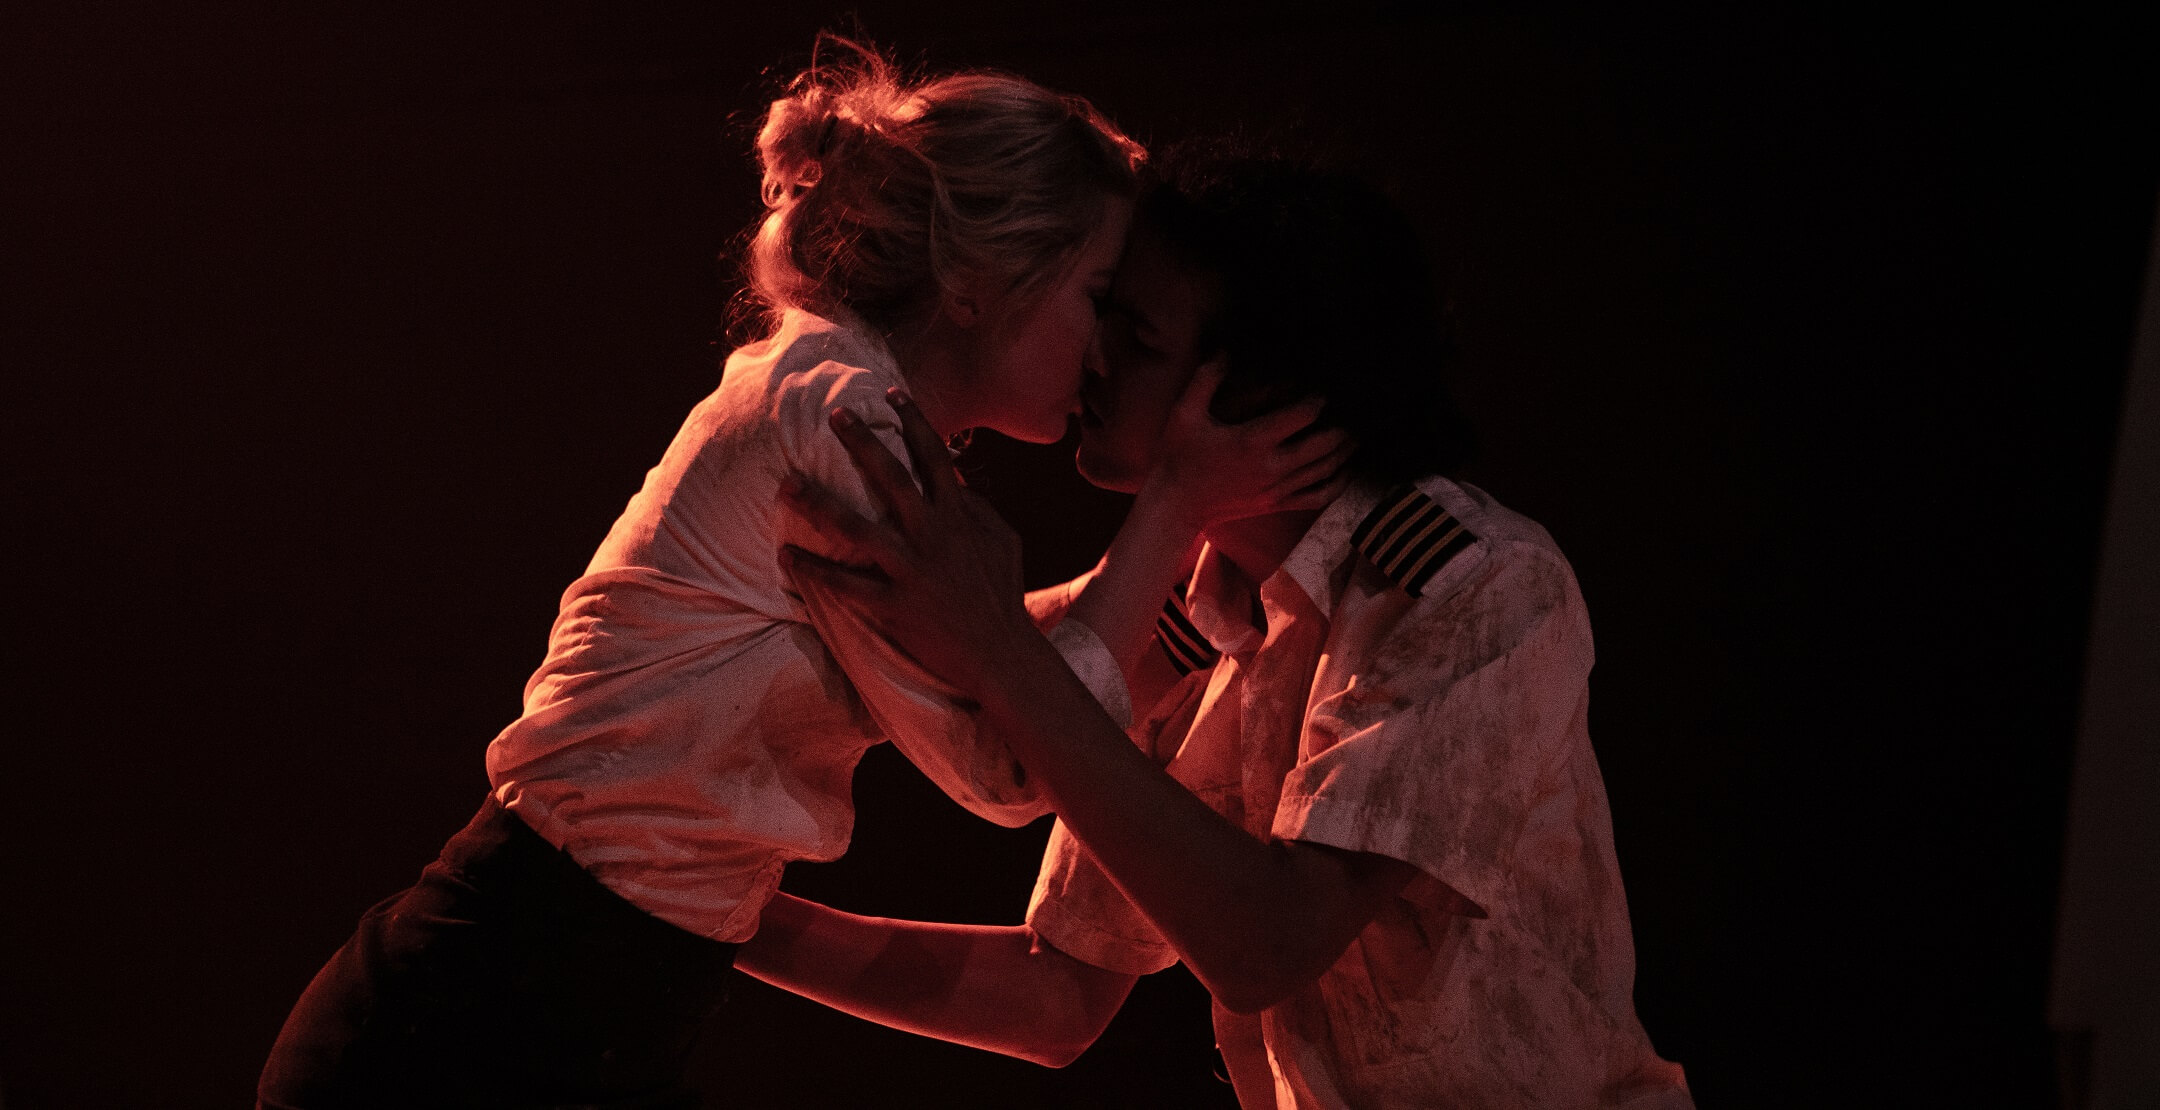 A couple kiss in a scene from the play San Diego, staged at the Royal Conservatoire of Scotland. Vanessa Coffey was the intimacy coordinator on set and in rehearsals.